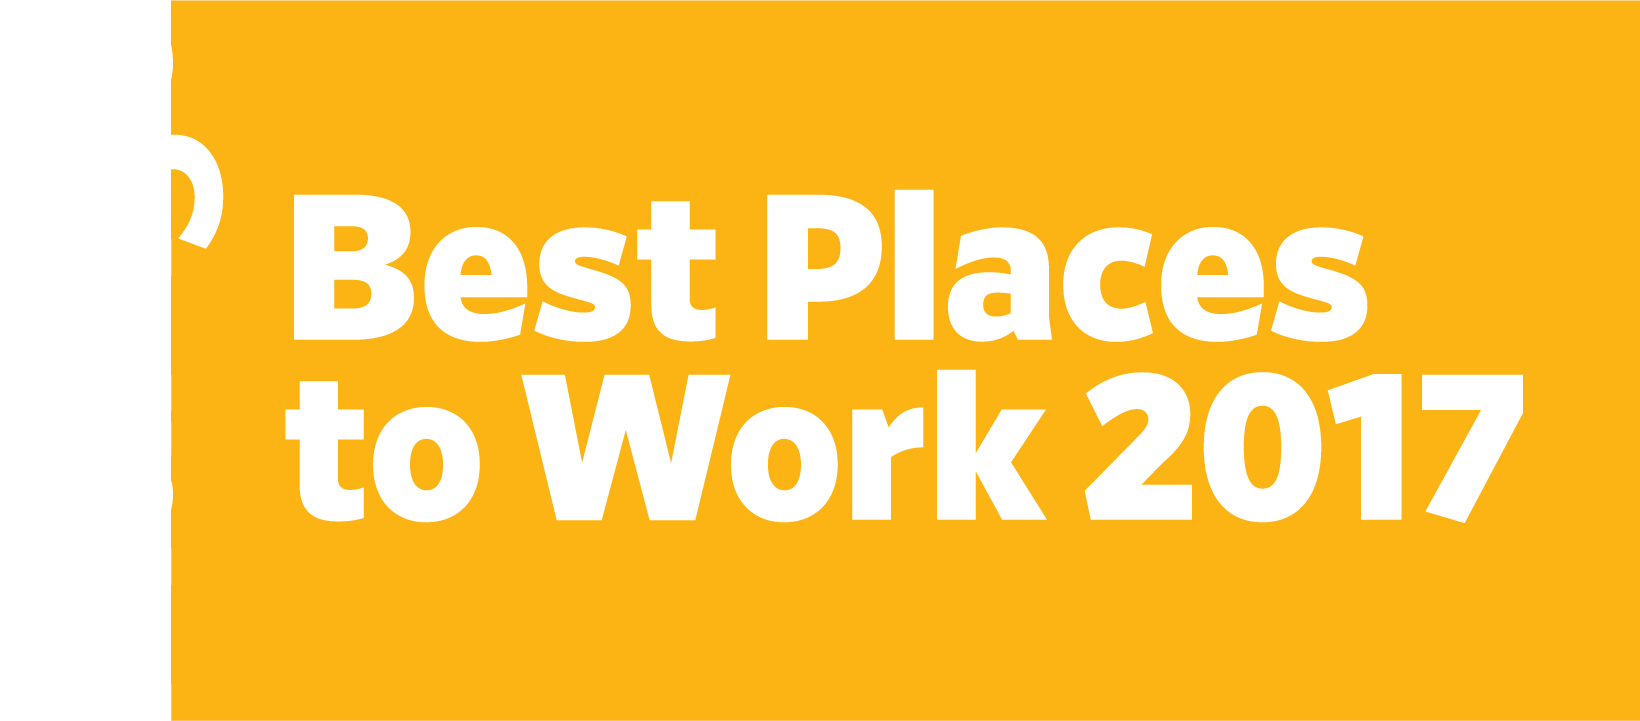 AdAge Best Places to Work 2017